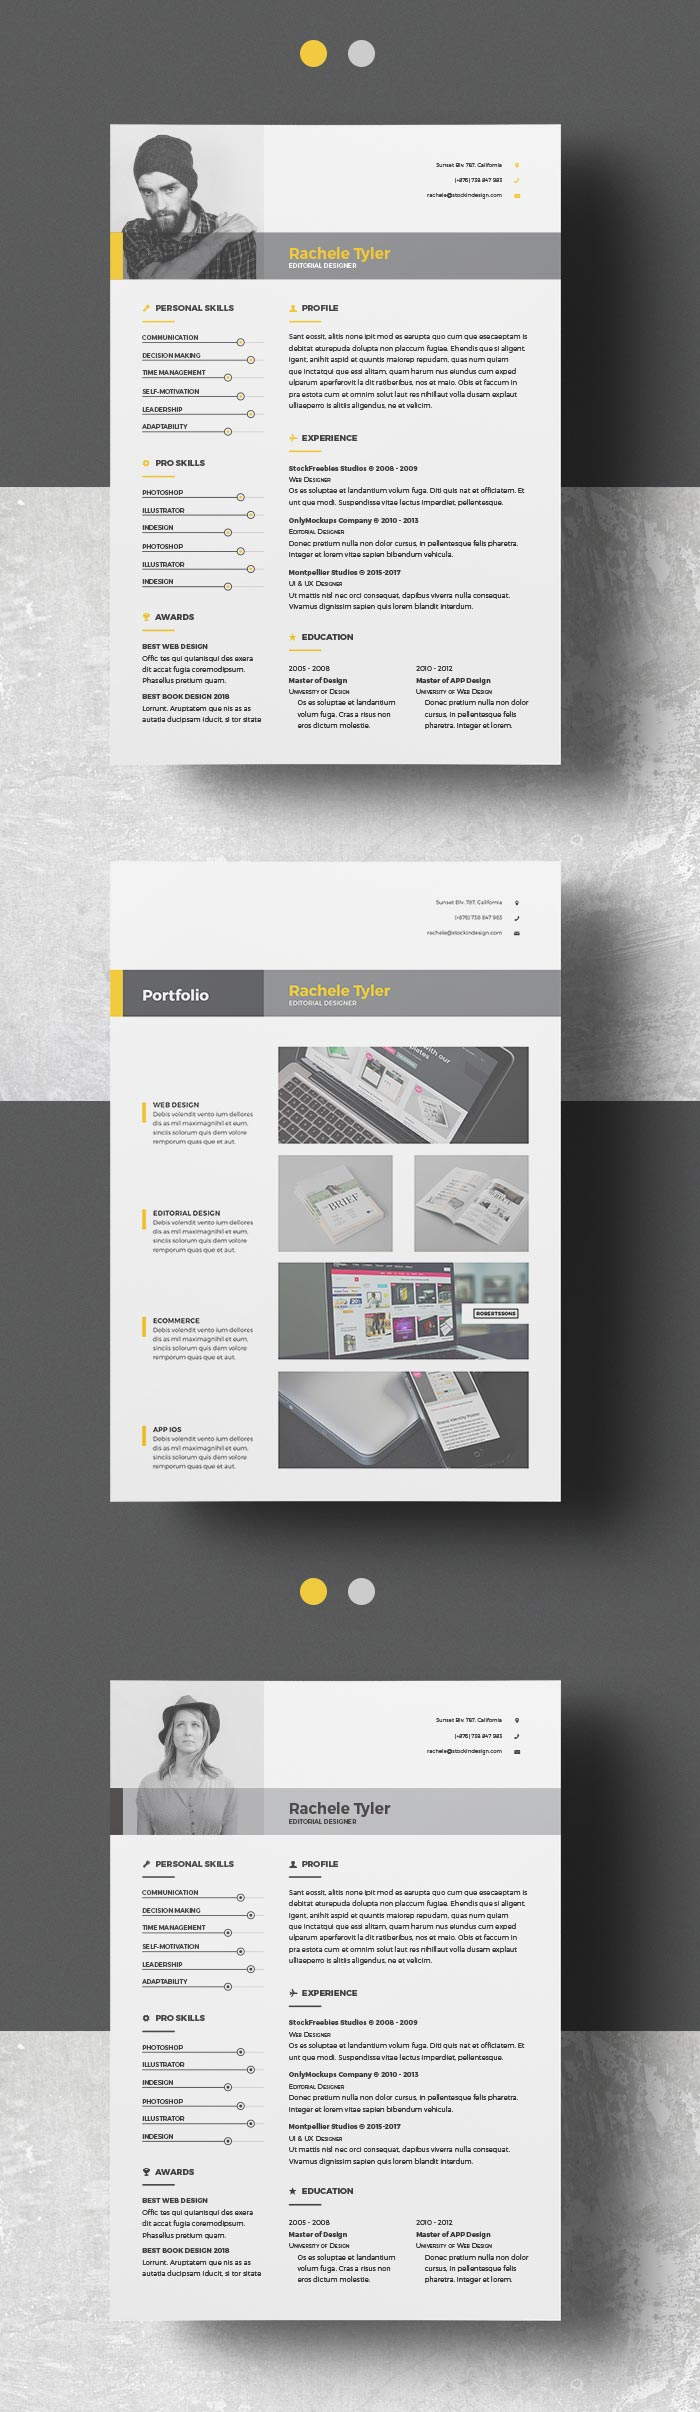 clean resume template for designers adobe indesign templates clean resume template